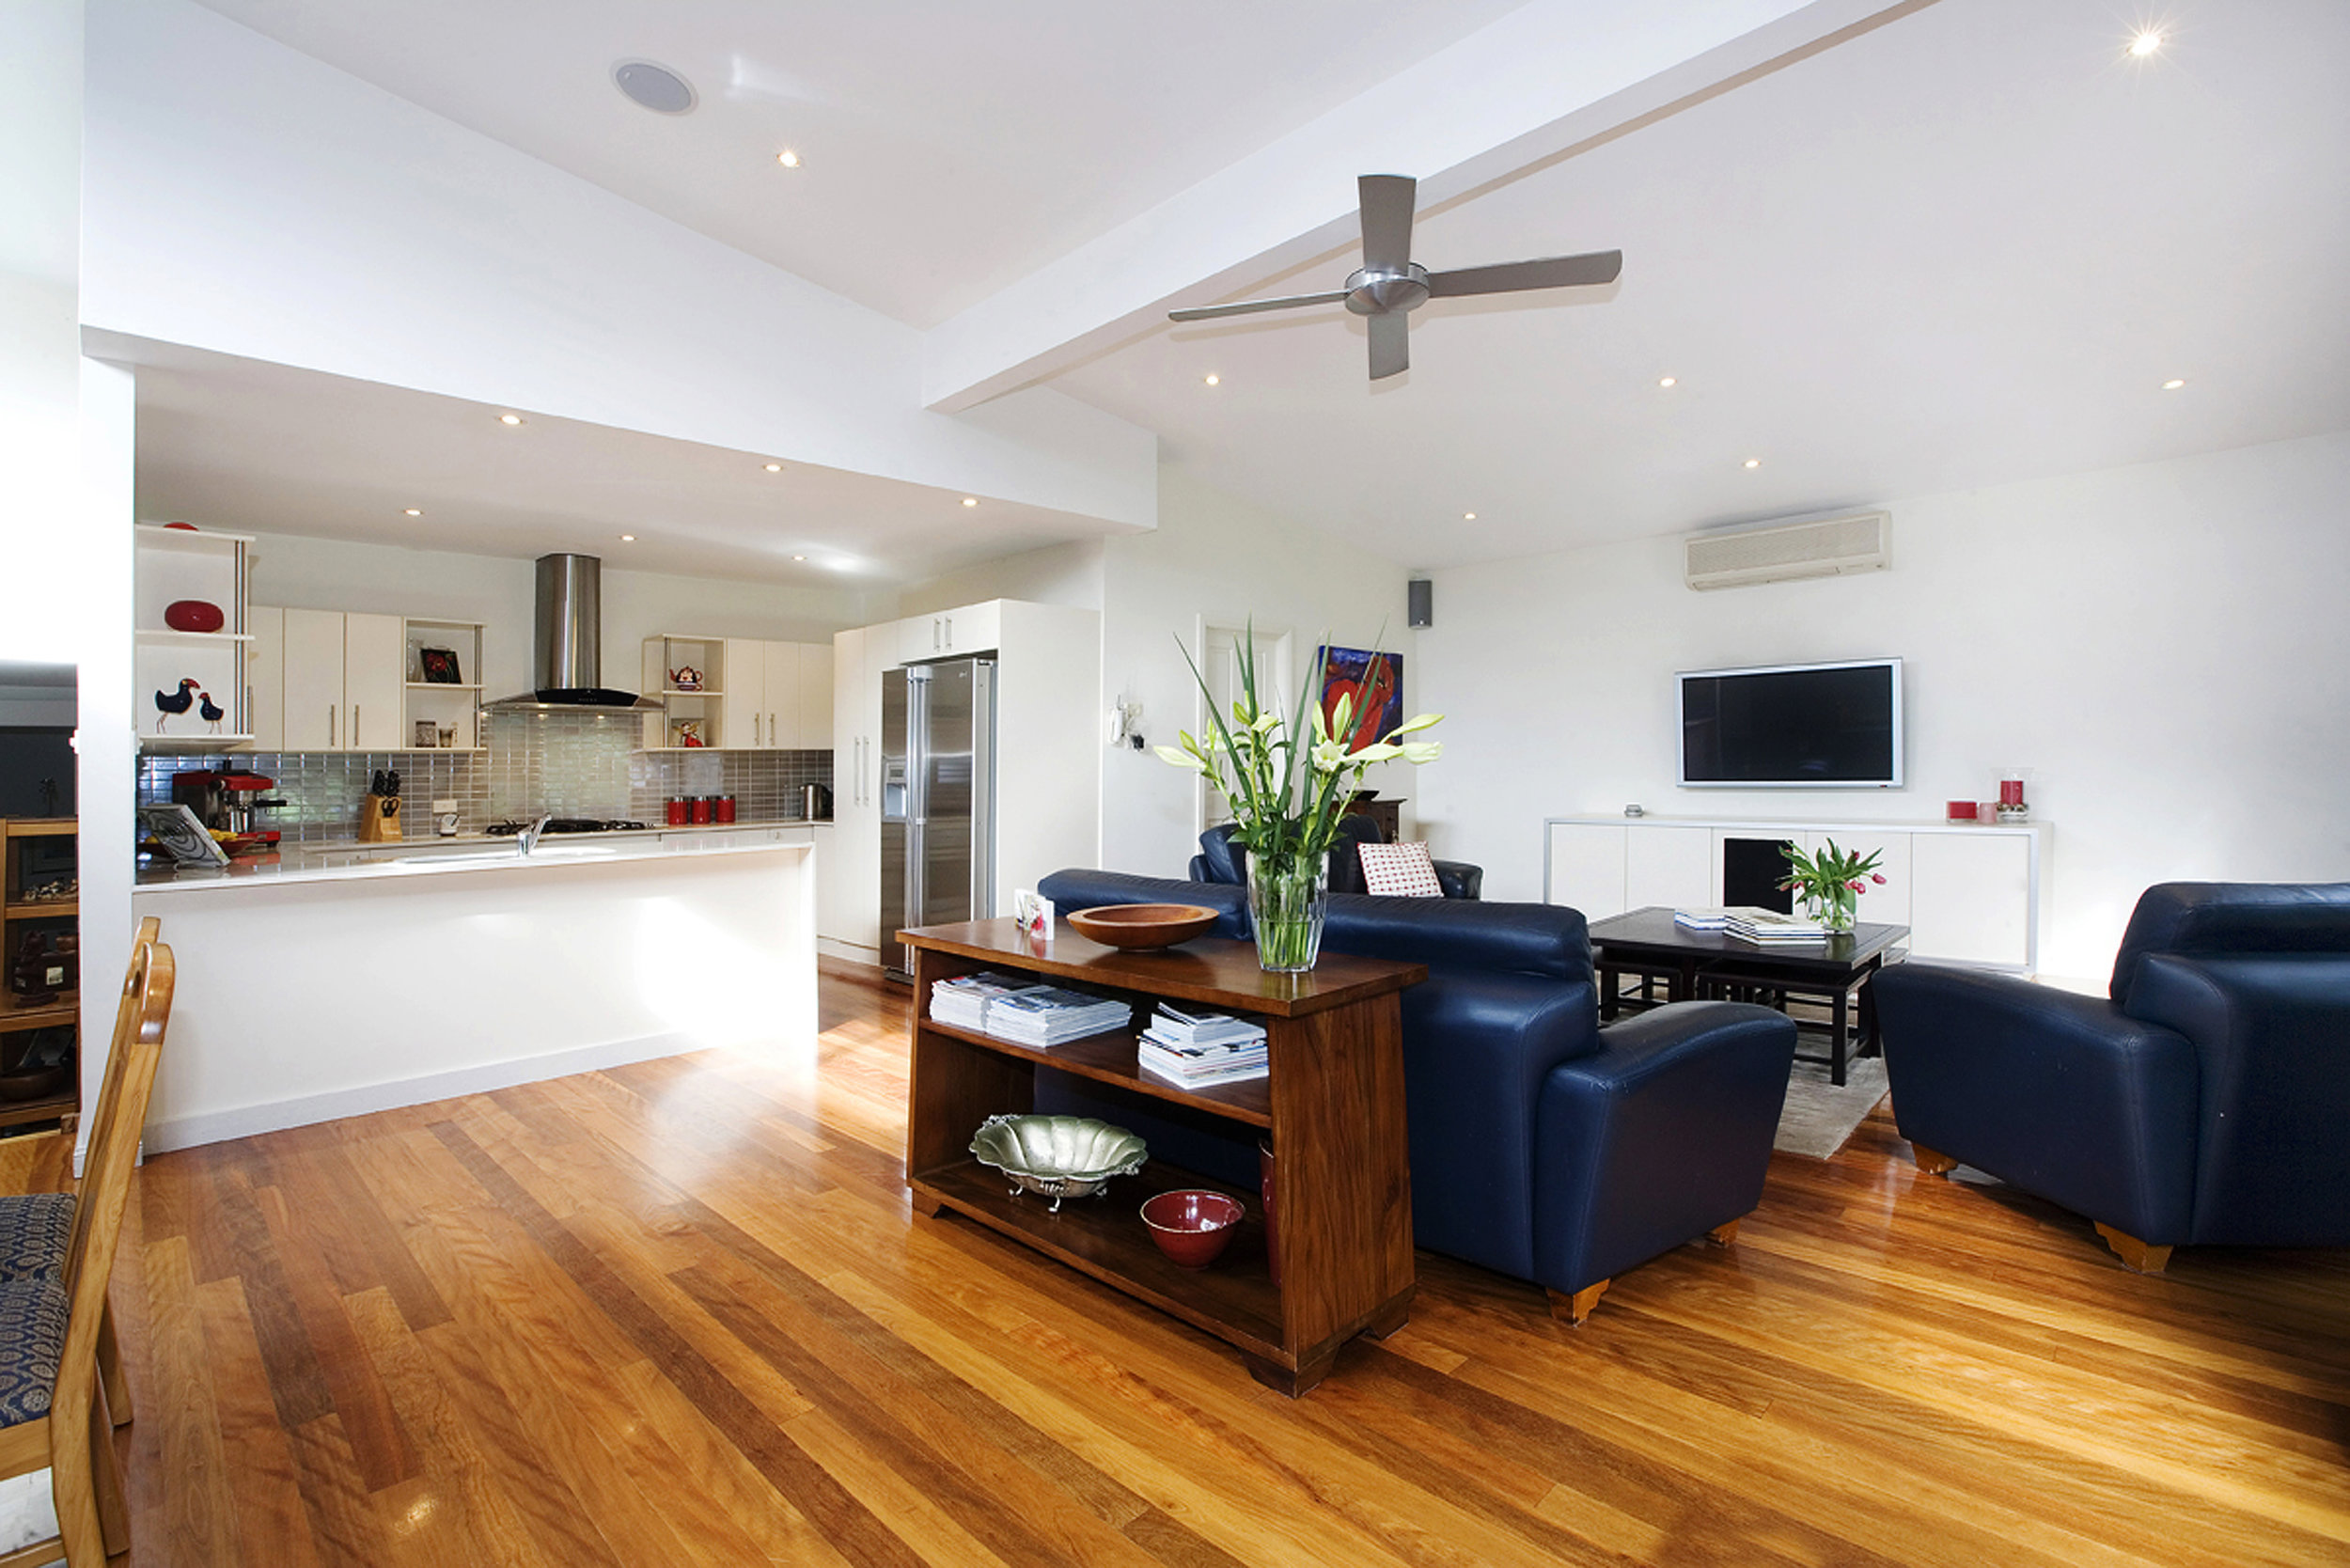 BRIEF - The clients of this home in Hunters Hill were looking to expand their small, dated cottage to accommodate their growing family, as well as to create a space that would allow them to entertain in a seamless indoor/outdoor setting.Our clients also wanted to renovate the internal and external of the house in order to create a more modern home that would add resale value, all the while maintaining its original cottage charm.The original drive and access-way to the house was also in need of a complete overhaul in order to make it more functional and useable.